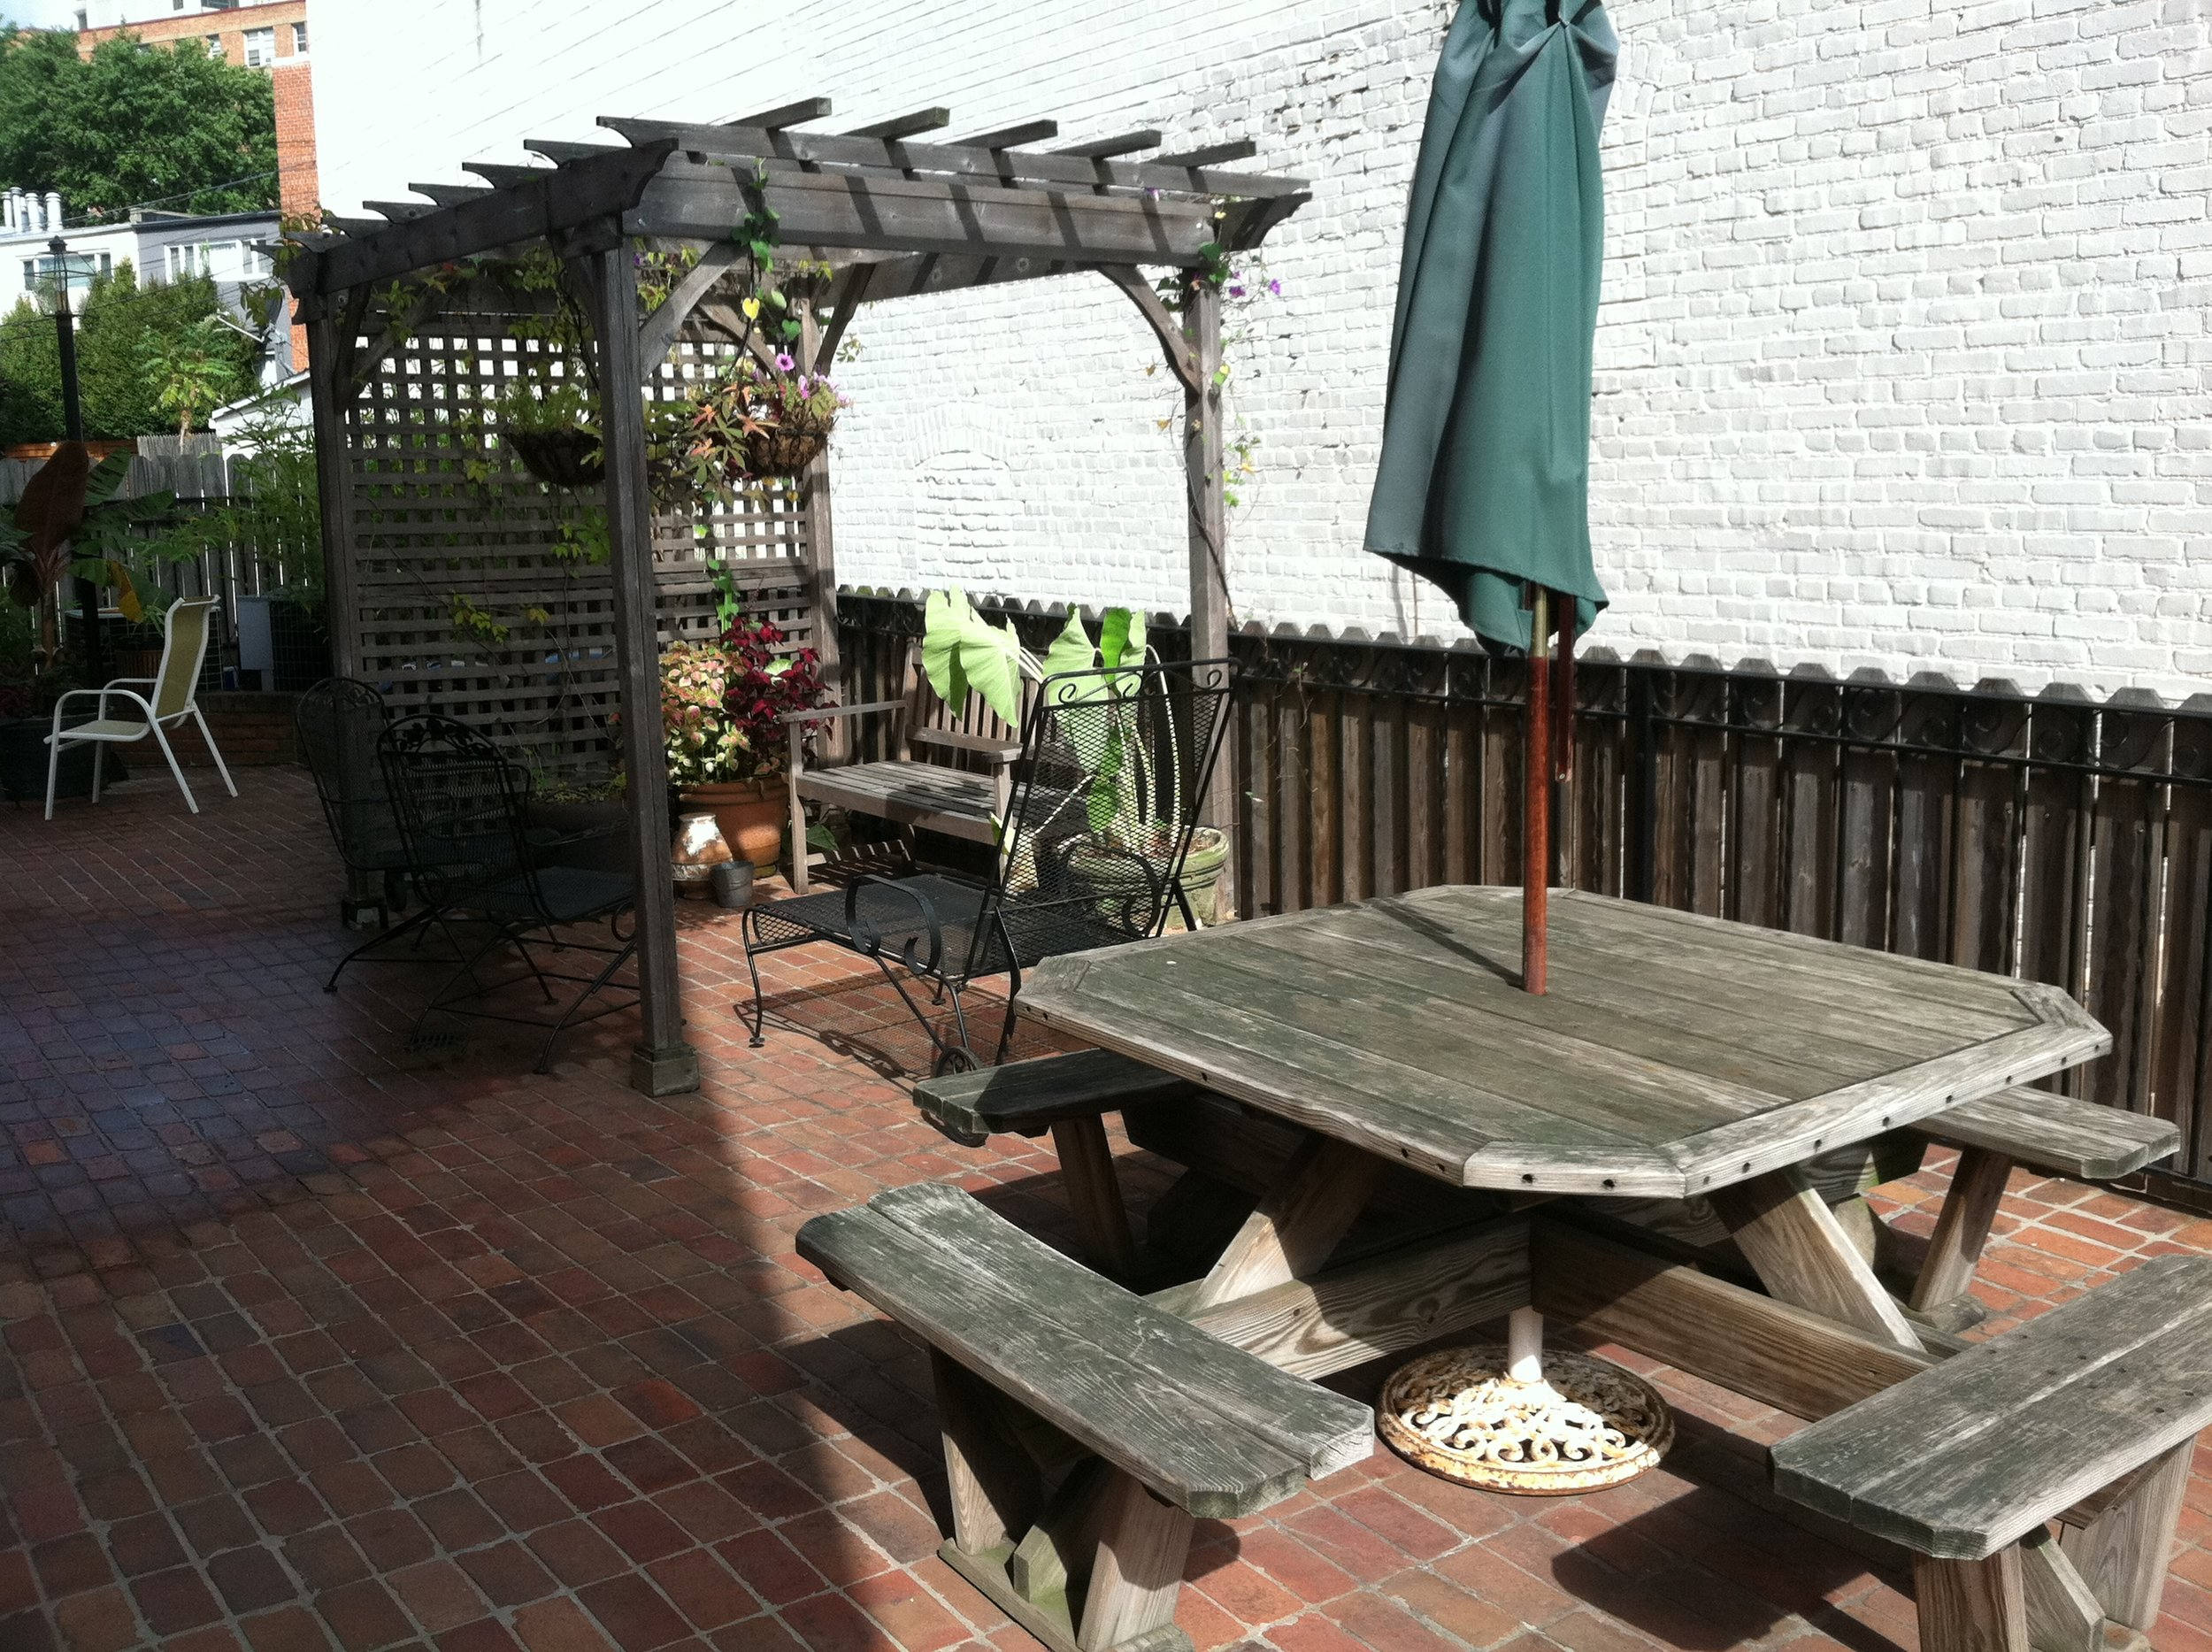 outdoor party terrace hosting before and after gazebo trellis picnic table bbq